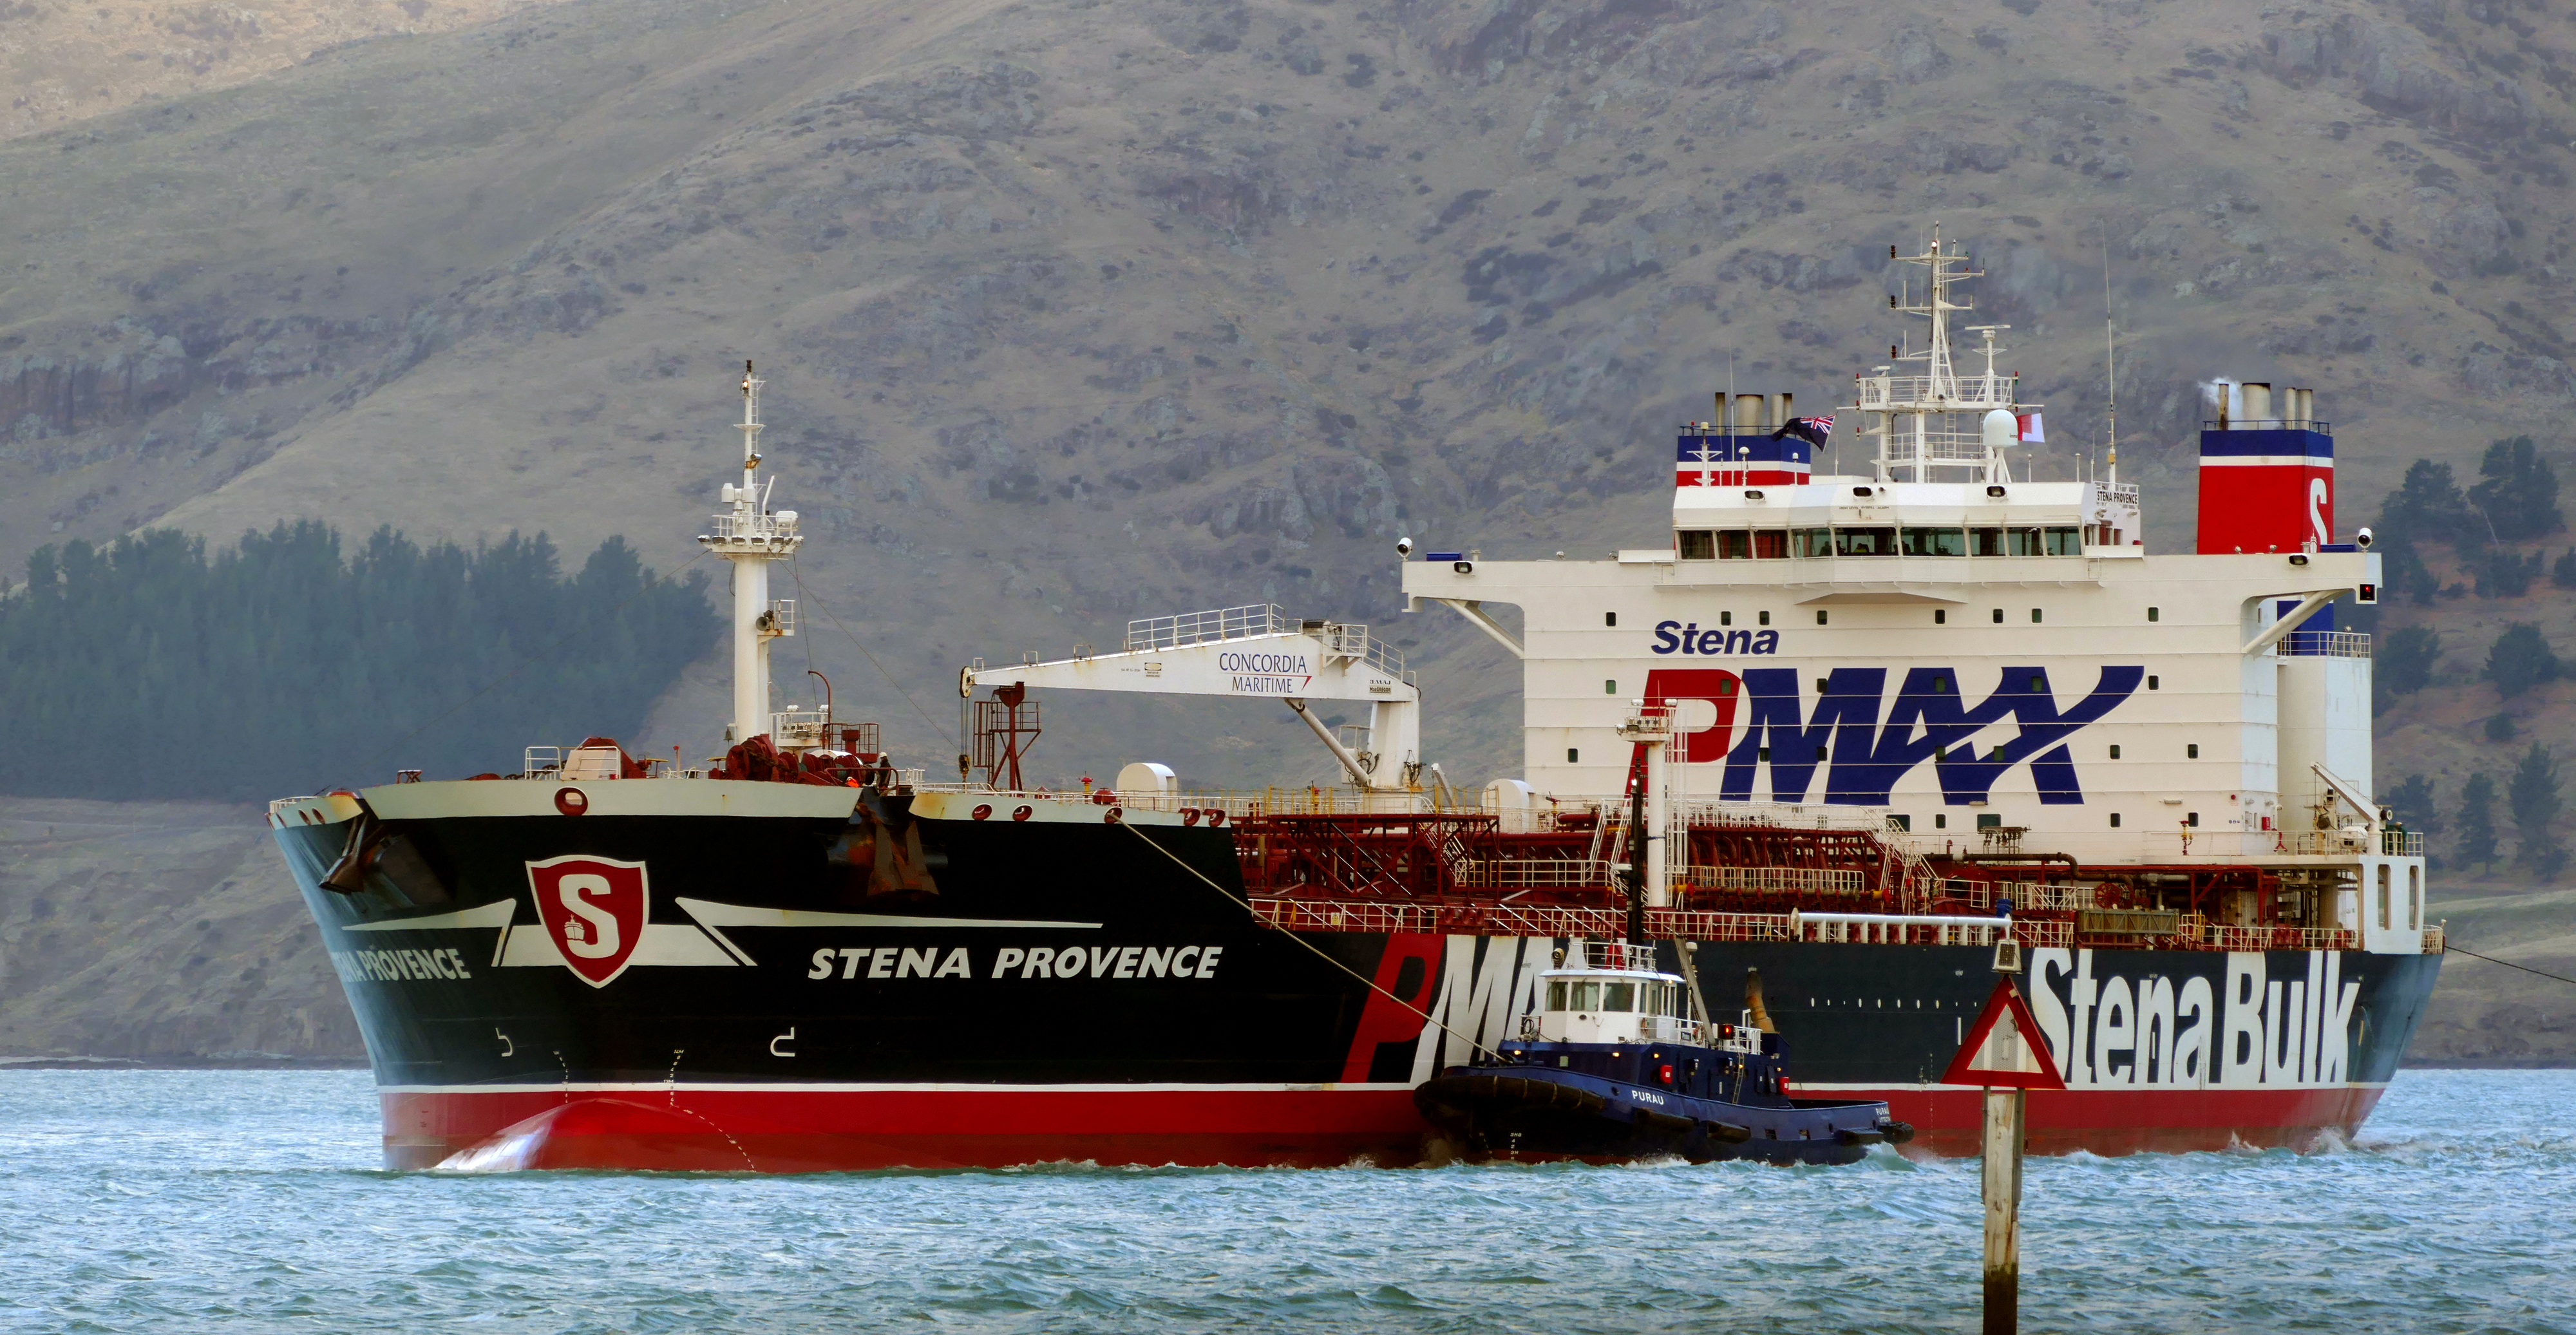 STENA PROVENCE.Oil/Chemical Tanker, Boat, Boats, Breville, Free photos, HQ Photo